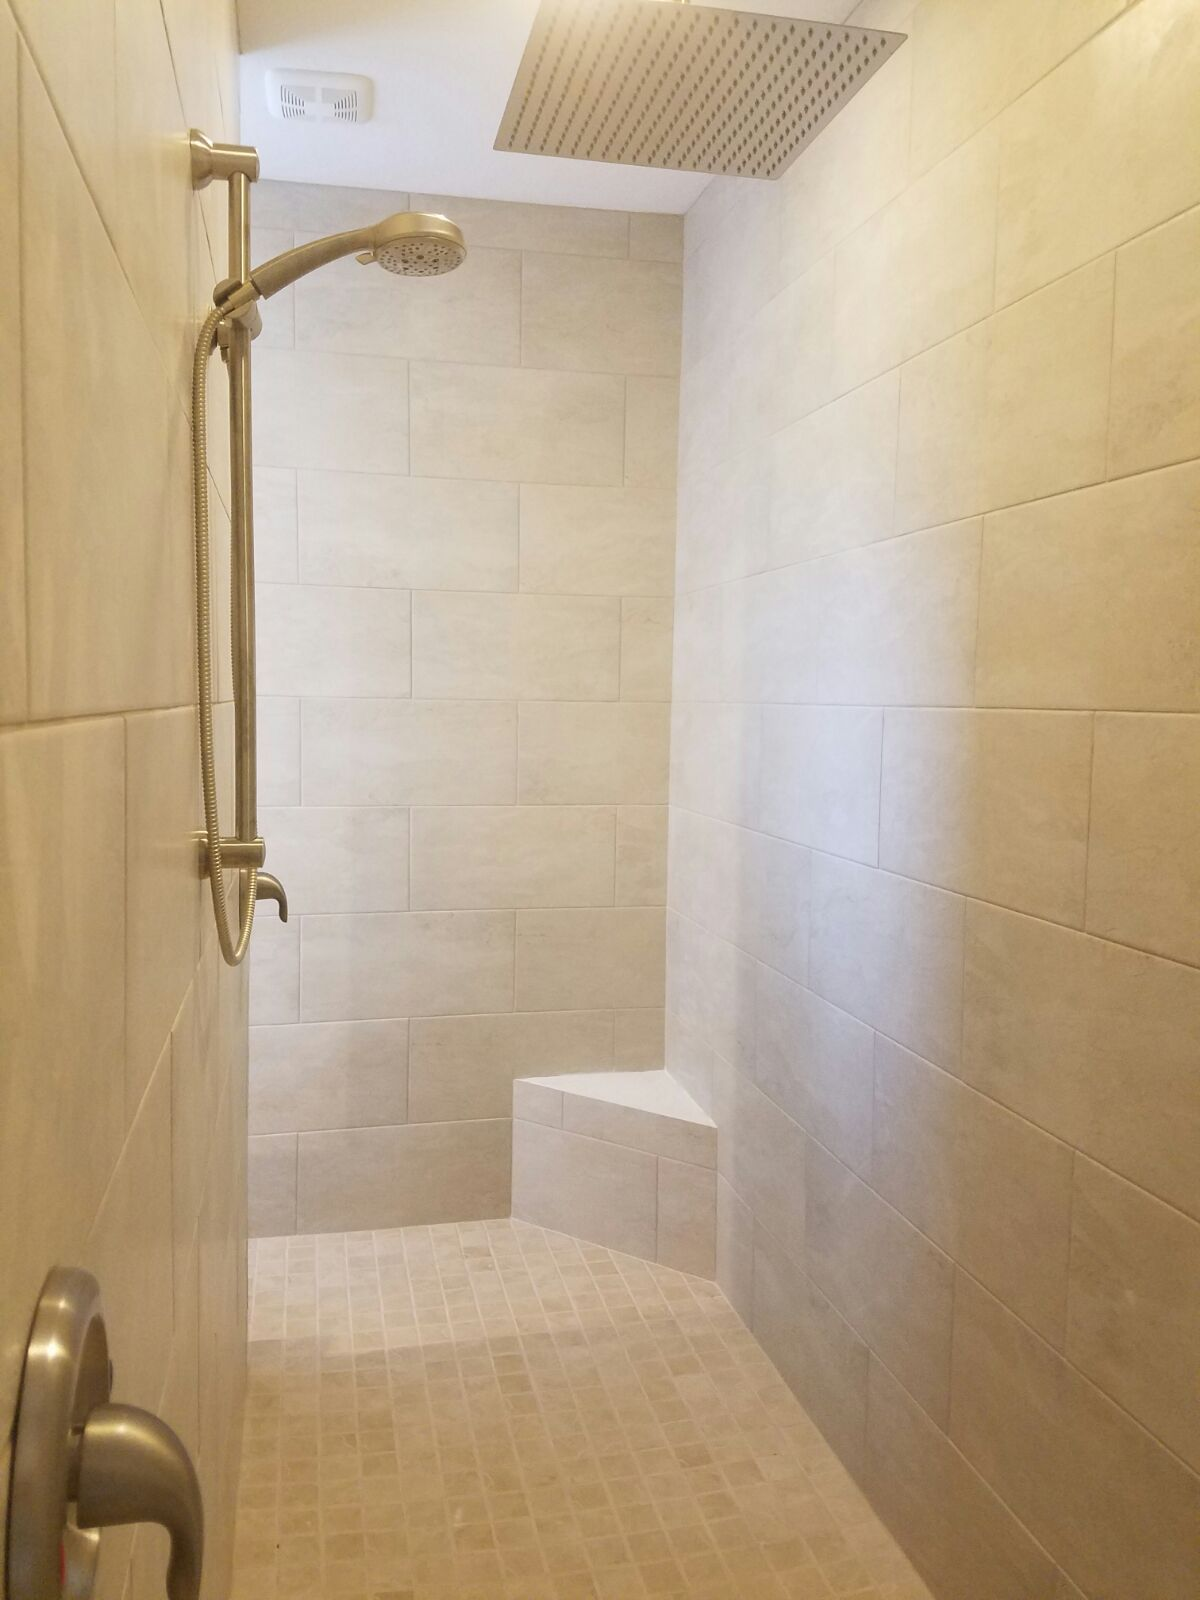 Doorlesss shower with showerseat tile on walls staggered pattern doorlesss shower with showerseat tile on walls staggered pattern tiles on floor dailygadgetfo Choice Image